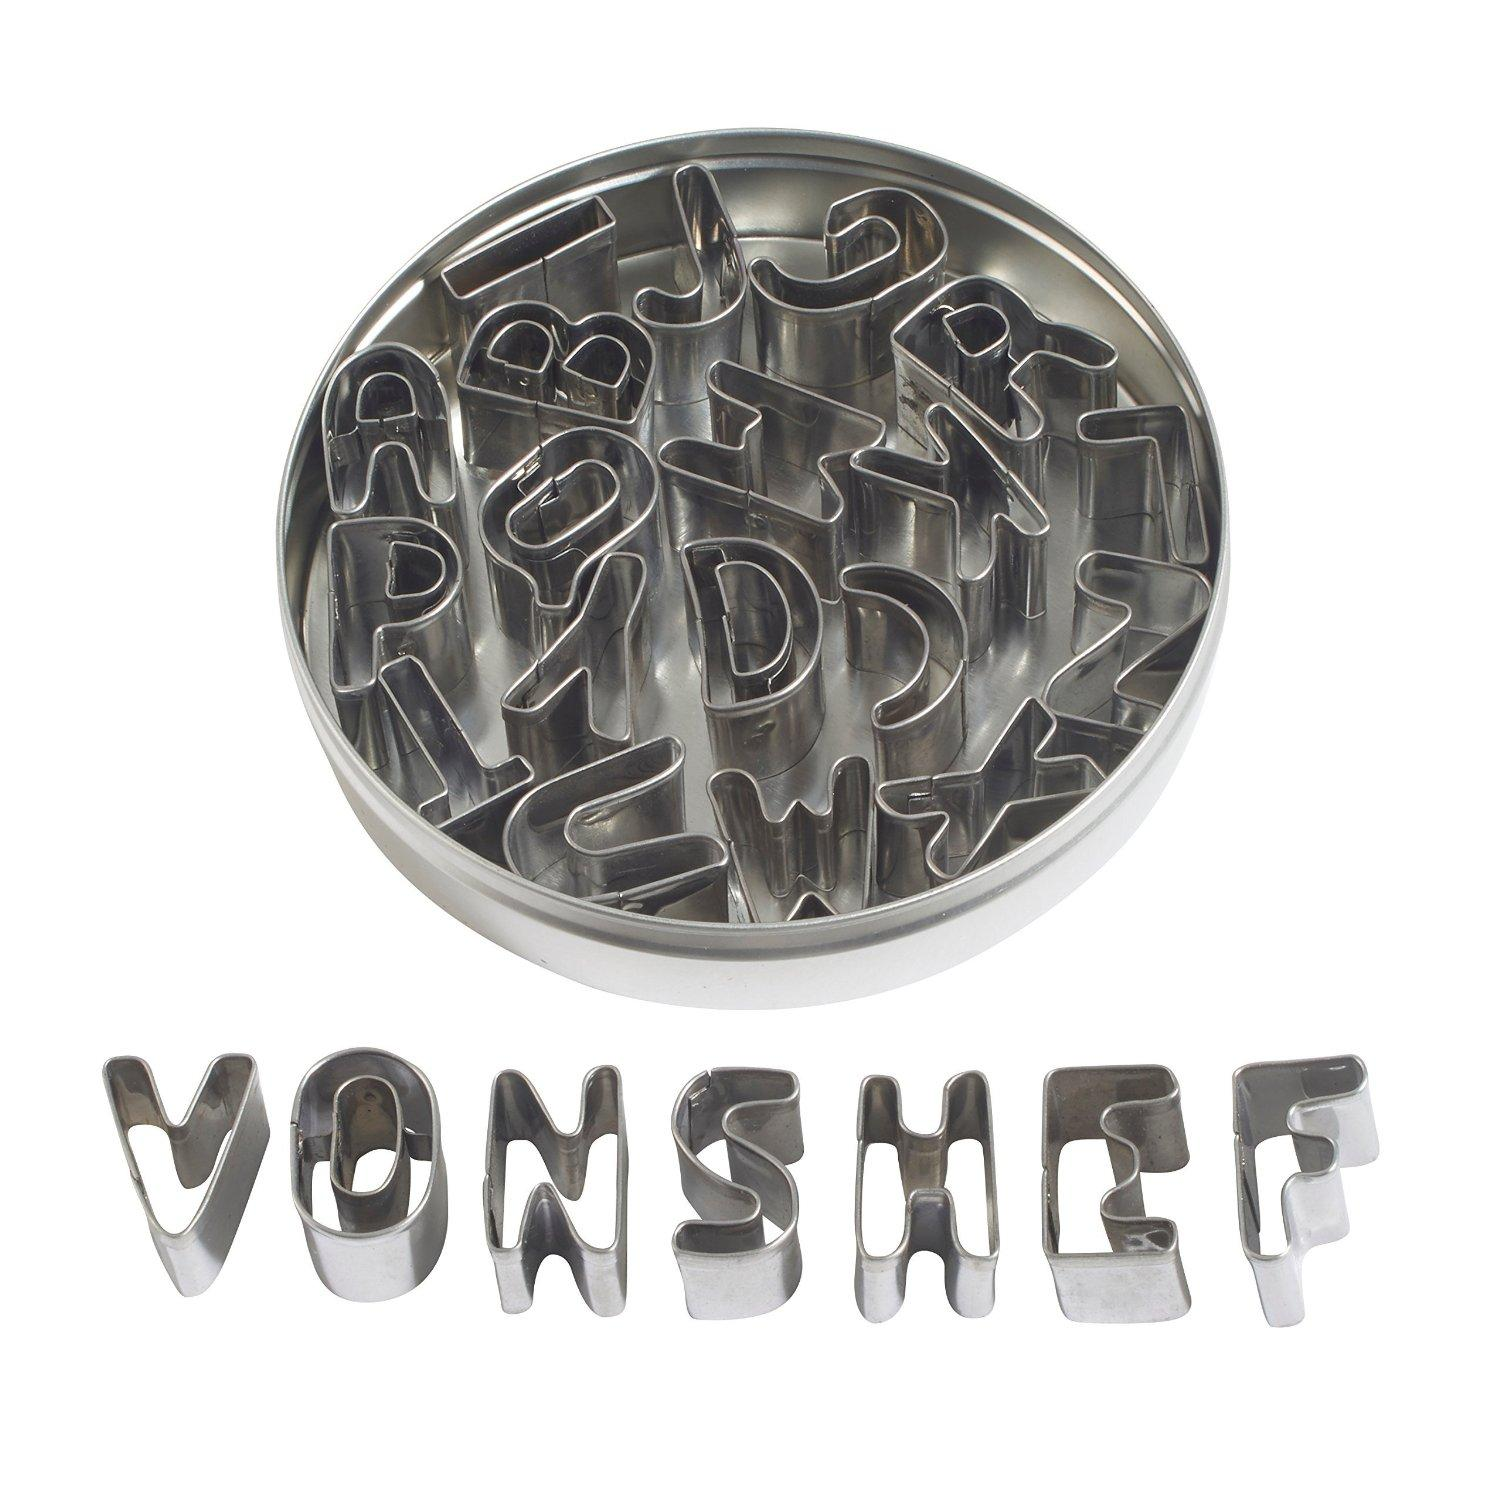 VonShef Stainless Steel 26 Piece Alphabet Cookie and Fondant Cutter Set